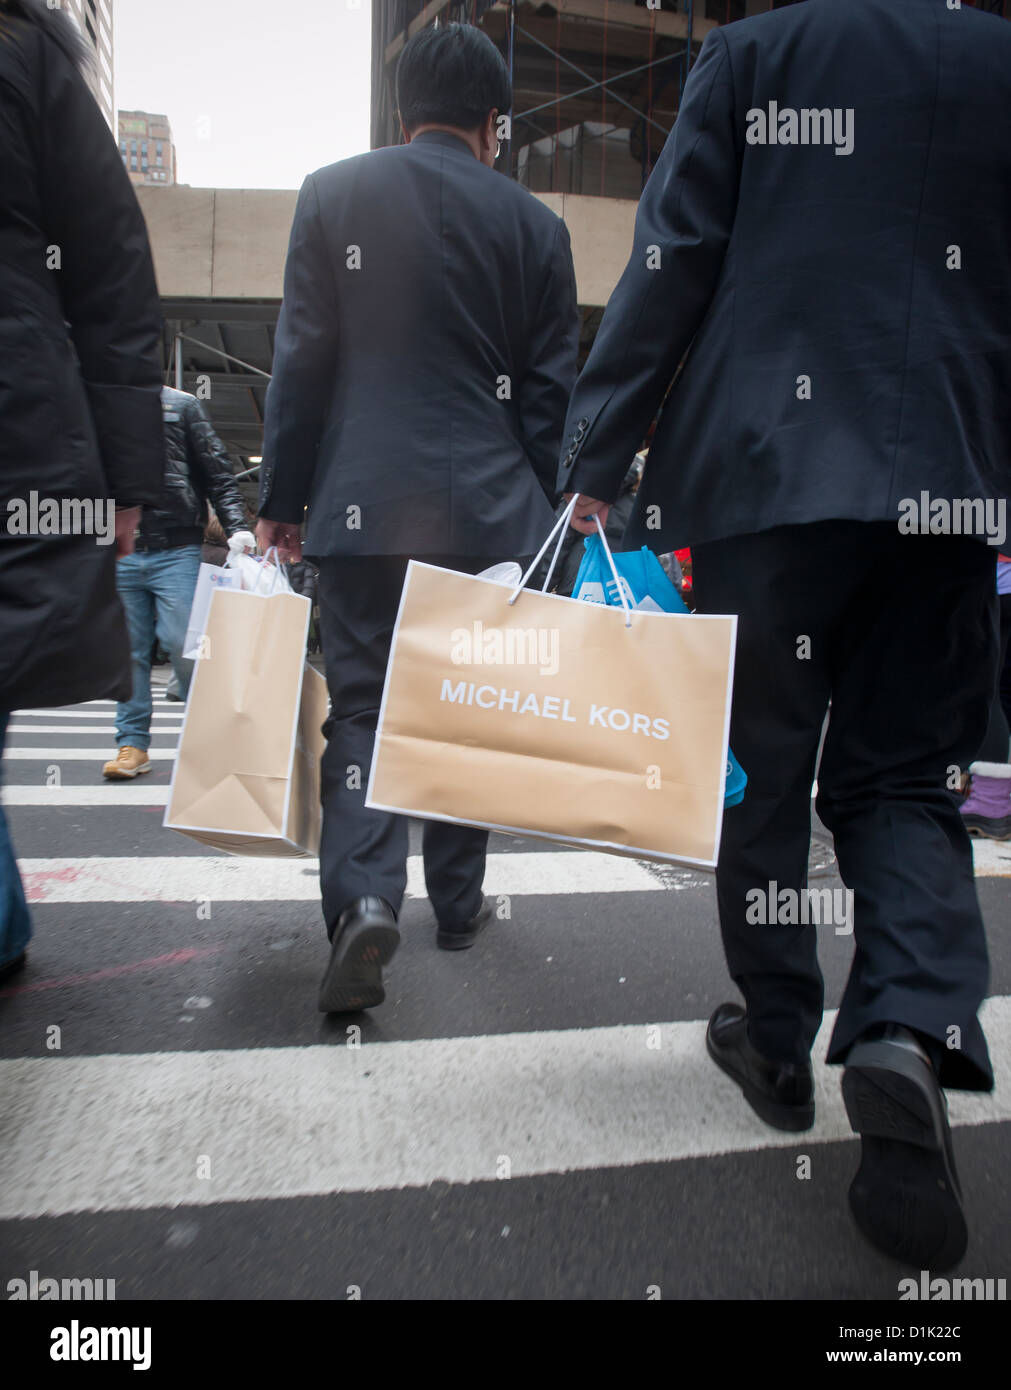 6bf1bce97b63 A shopper carries his Michael Kors purchases on Fifth Avenue in New York  during the Christmas